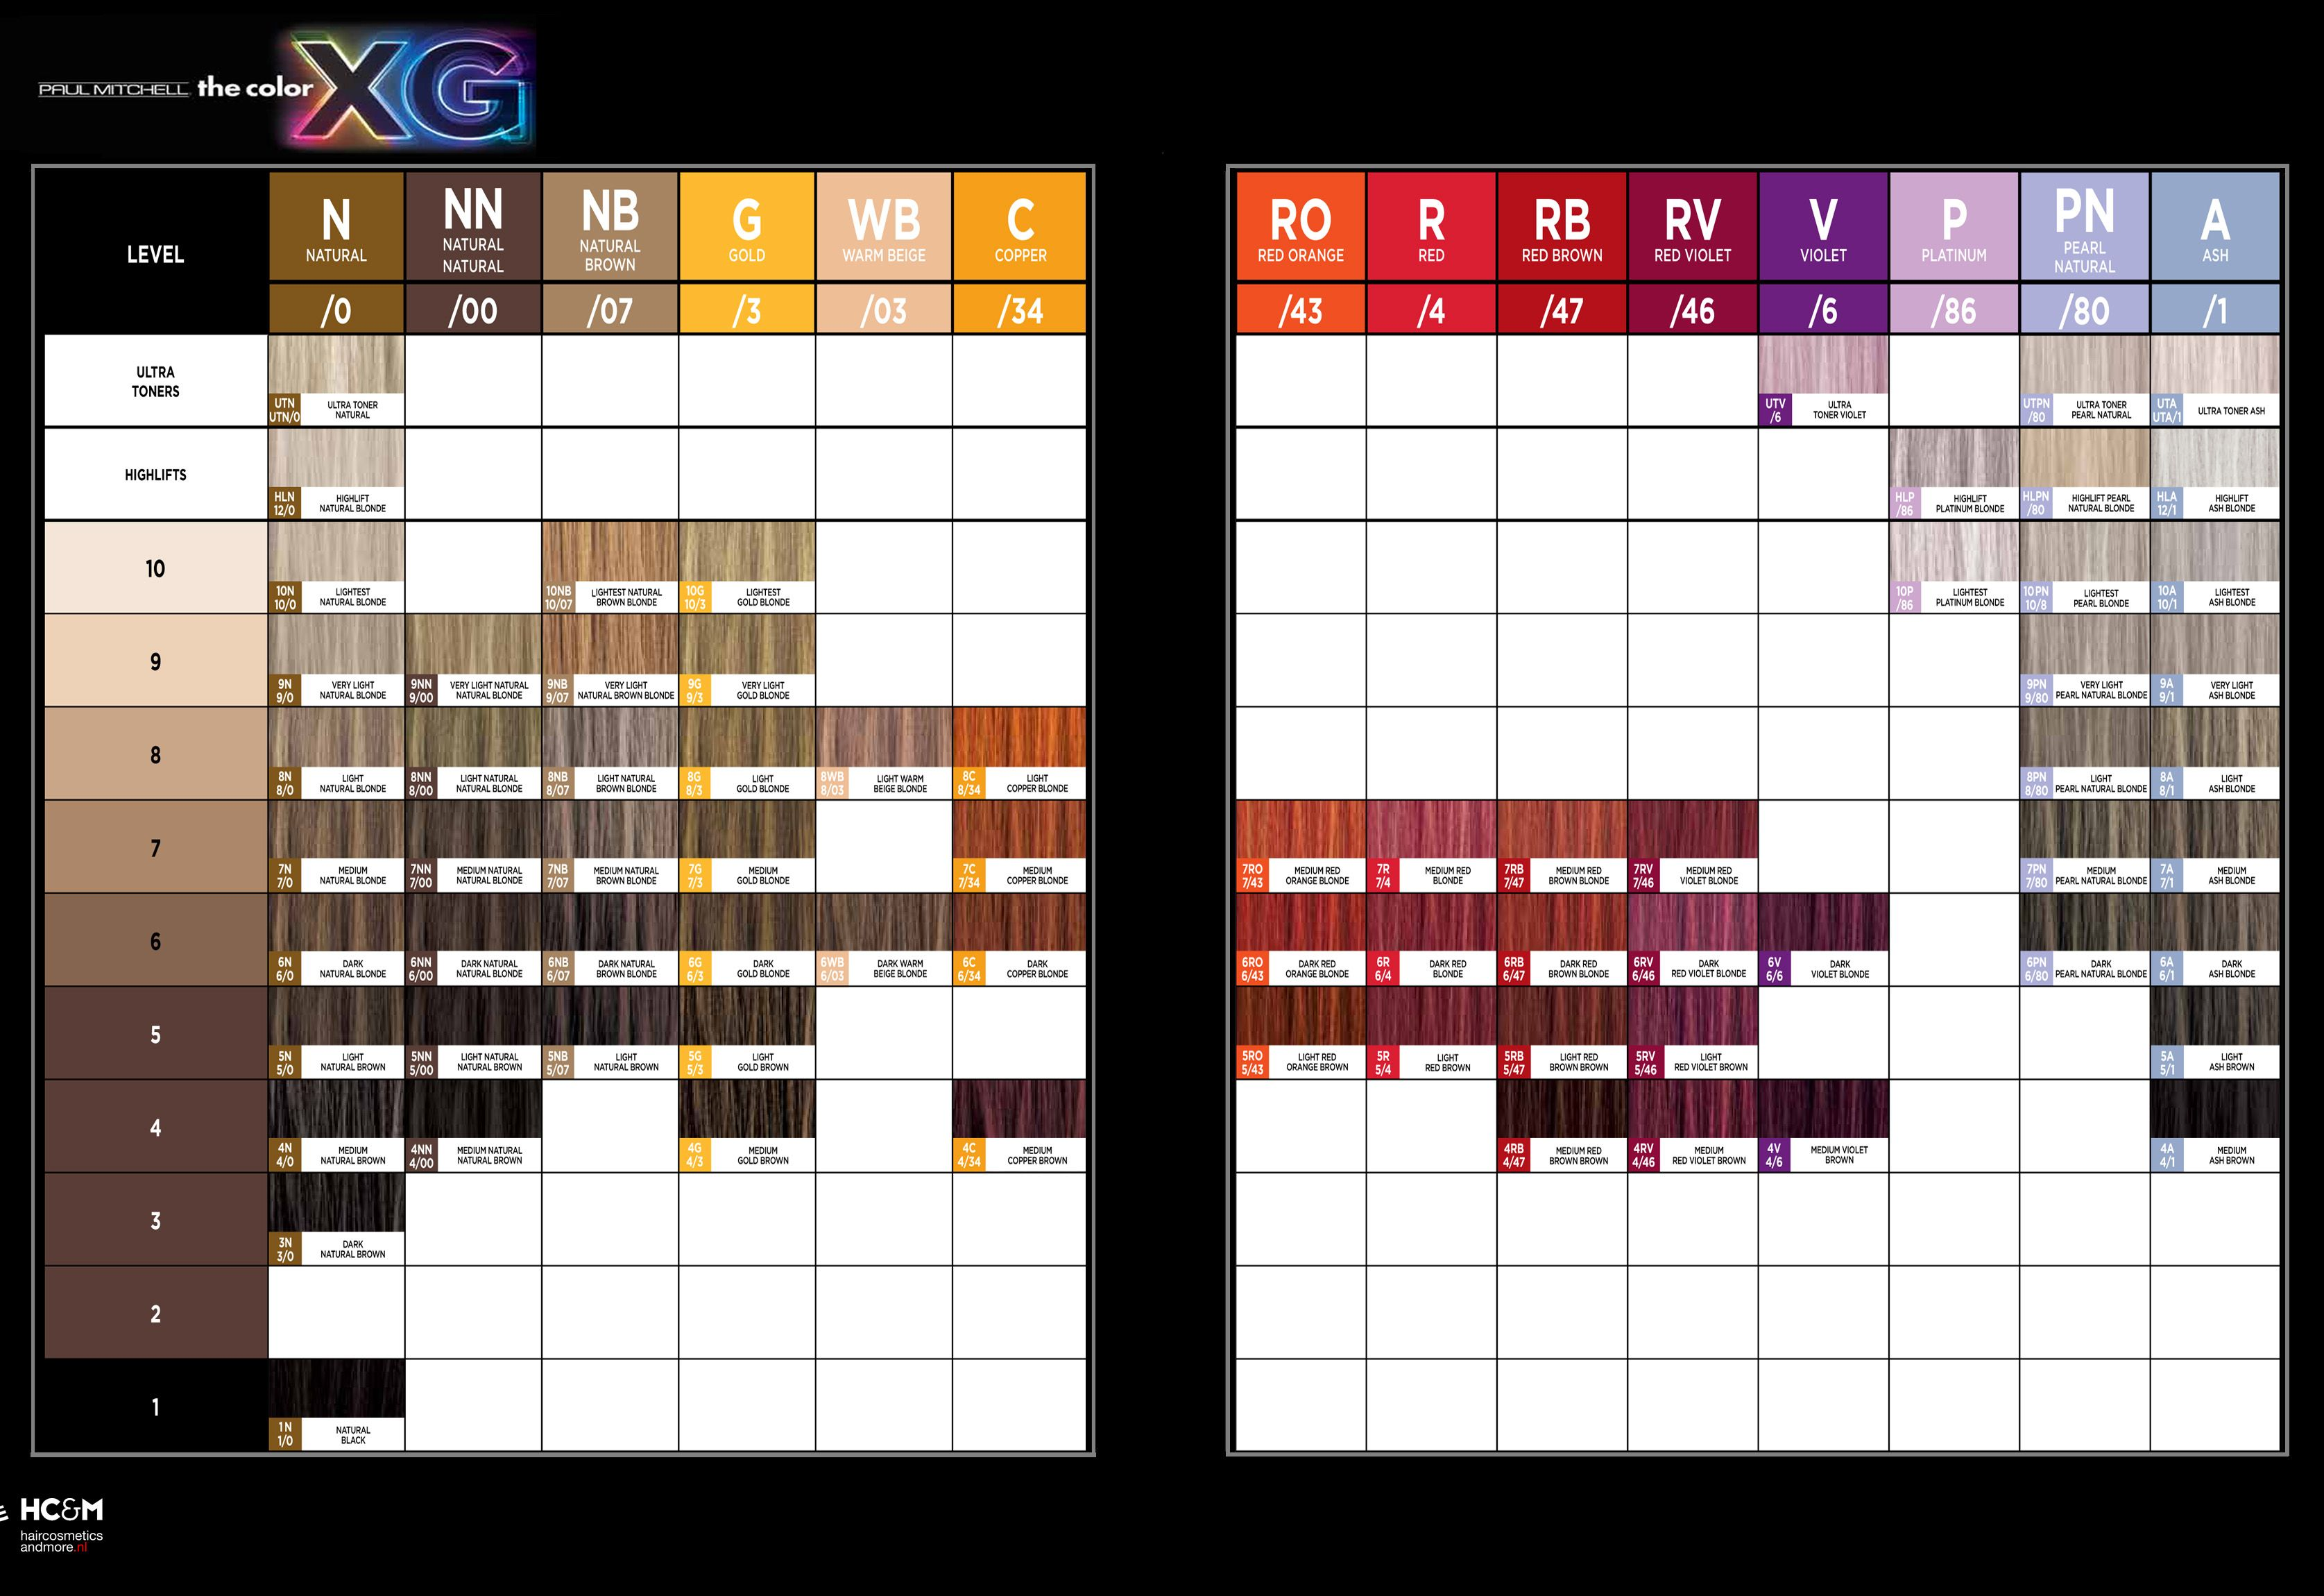 Paul Mitchell The Color XG Color Chart I LUV M BEAUTY